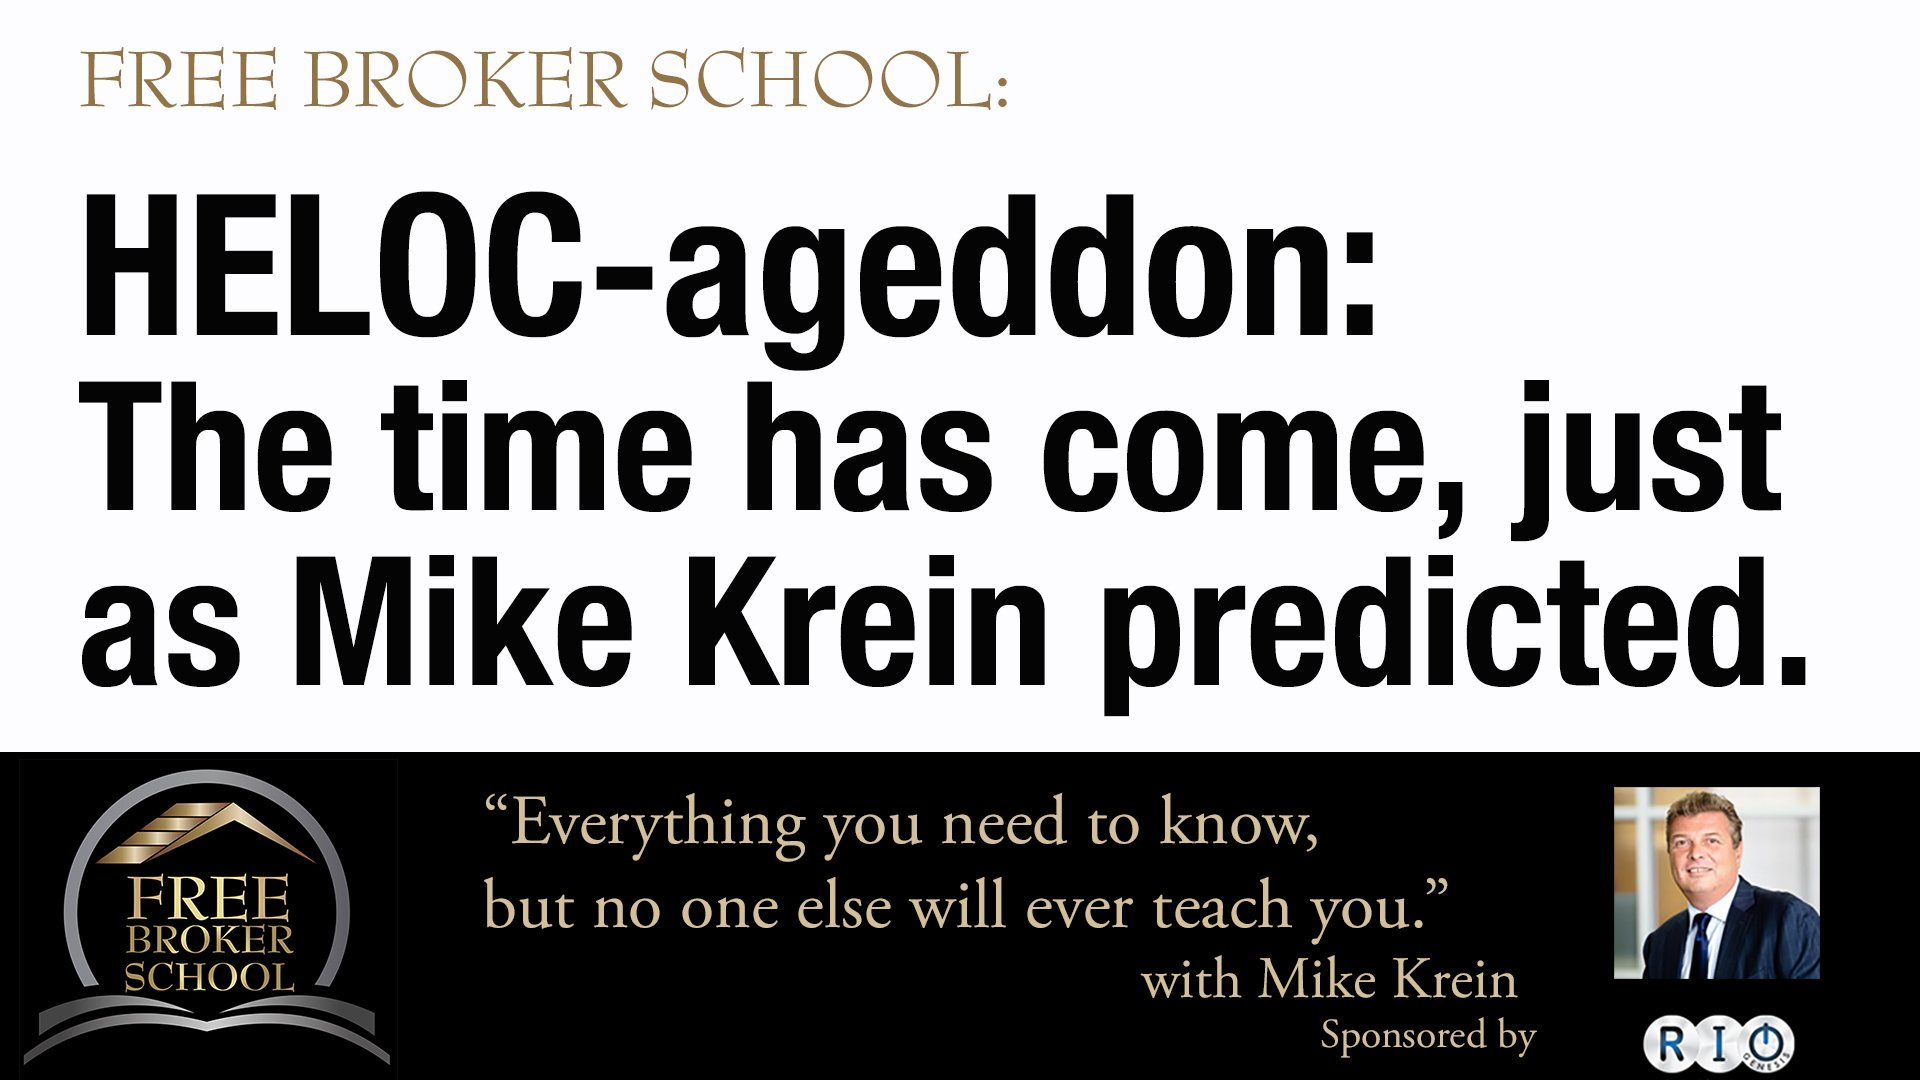 Free Broker School: HELOC-ageddon: The time has come, just as Mike Krein predicted.